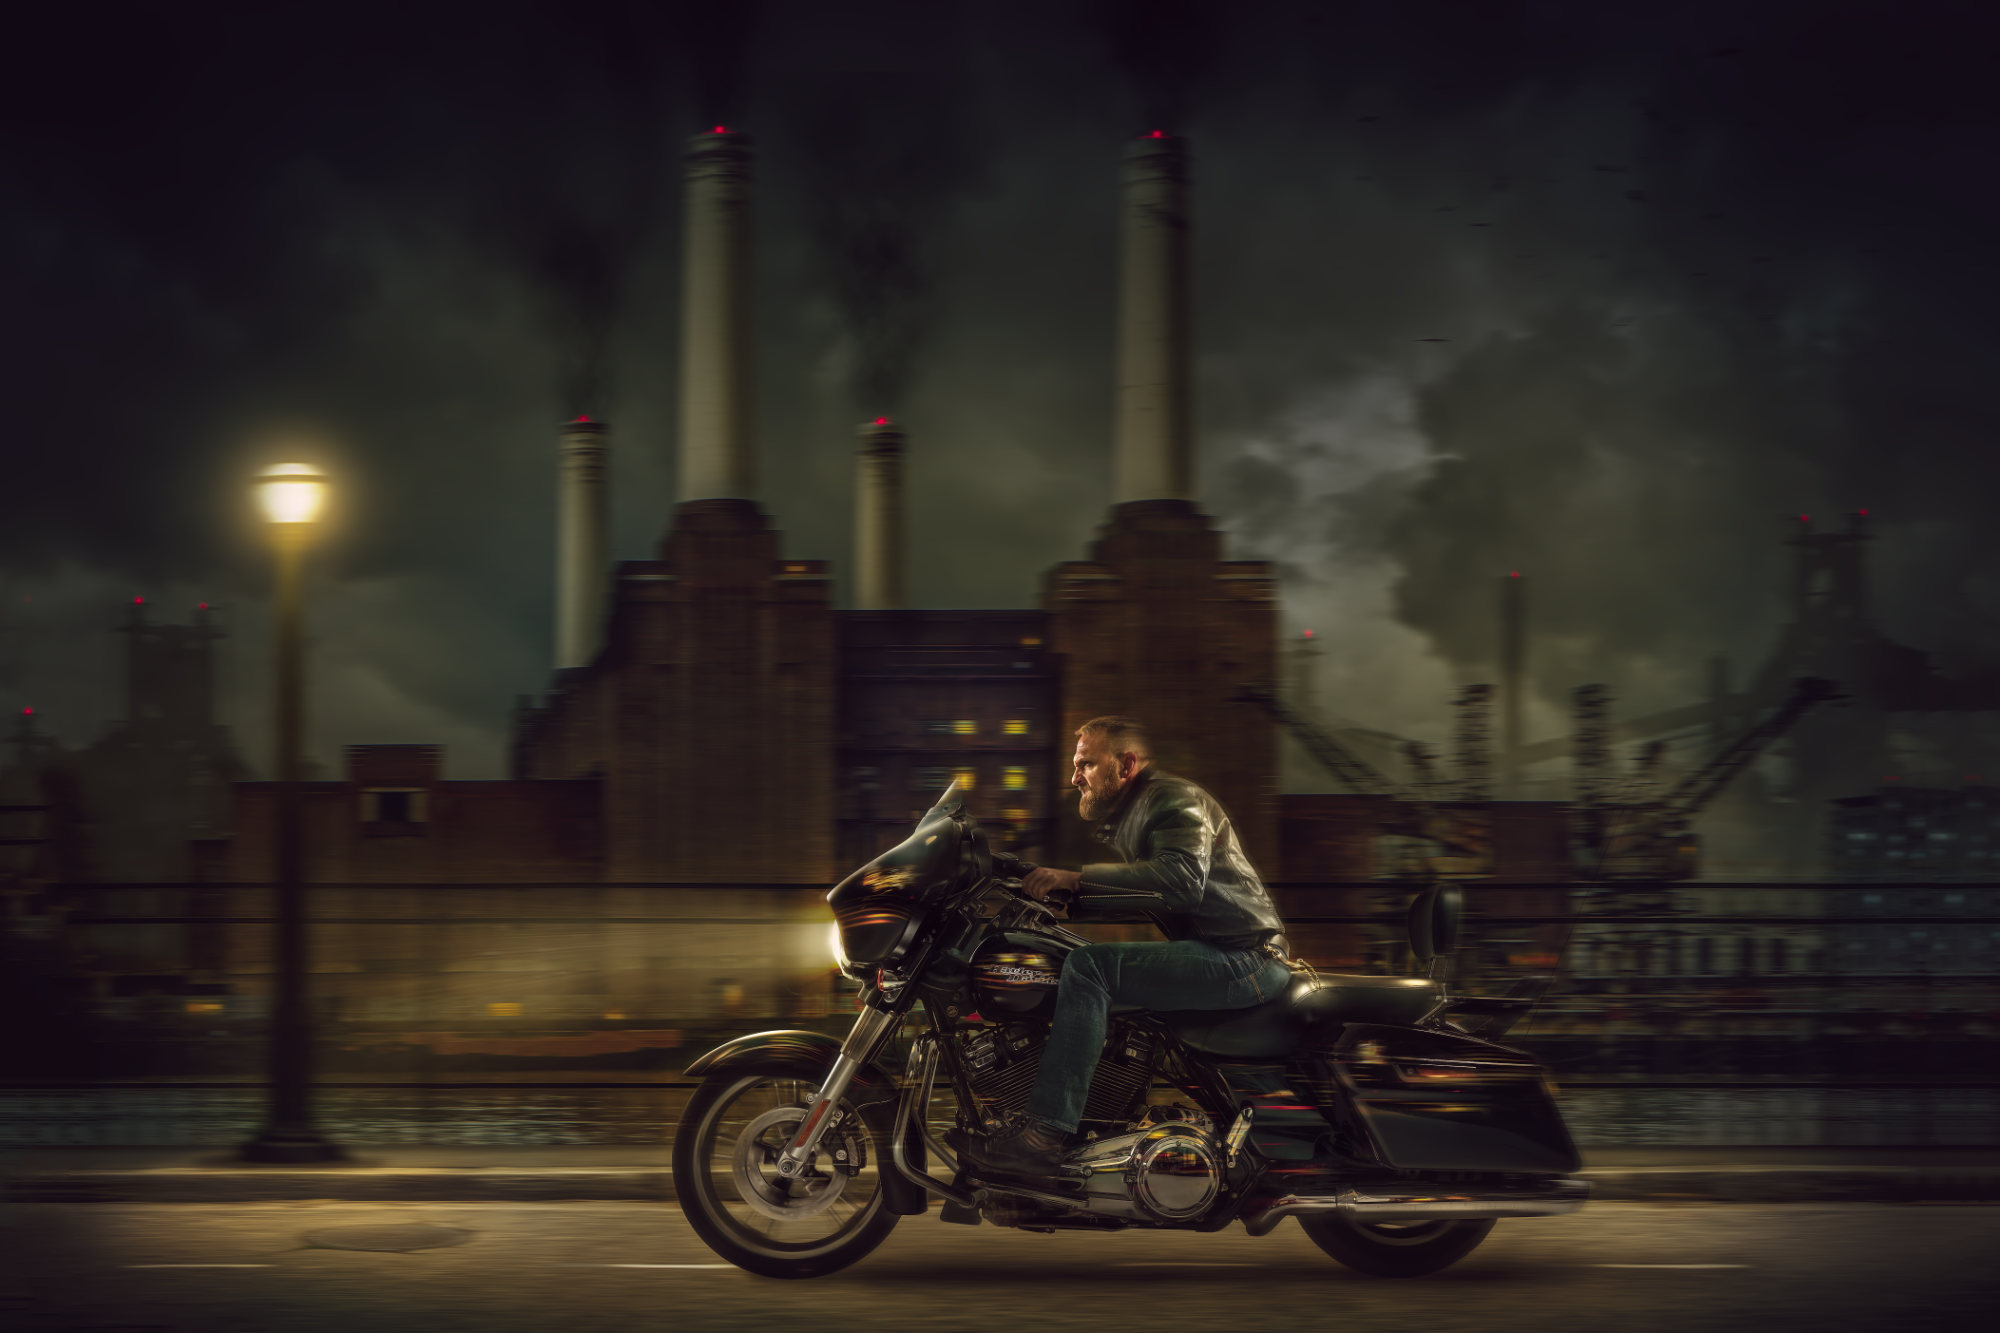 Chris Clor - guy riding harley davidson by Battersea Power Station